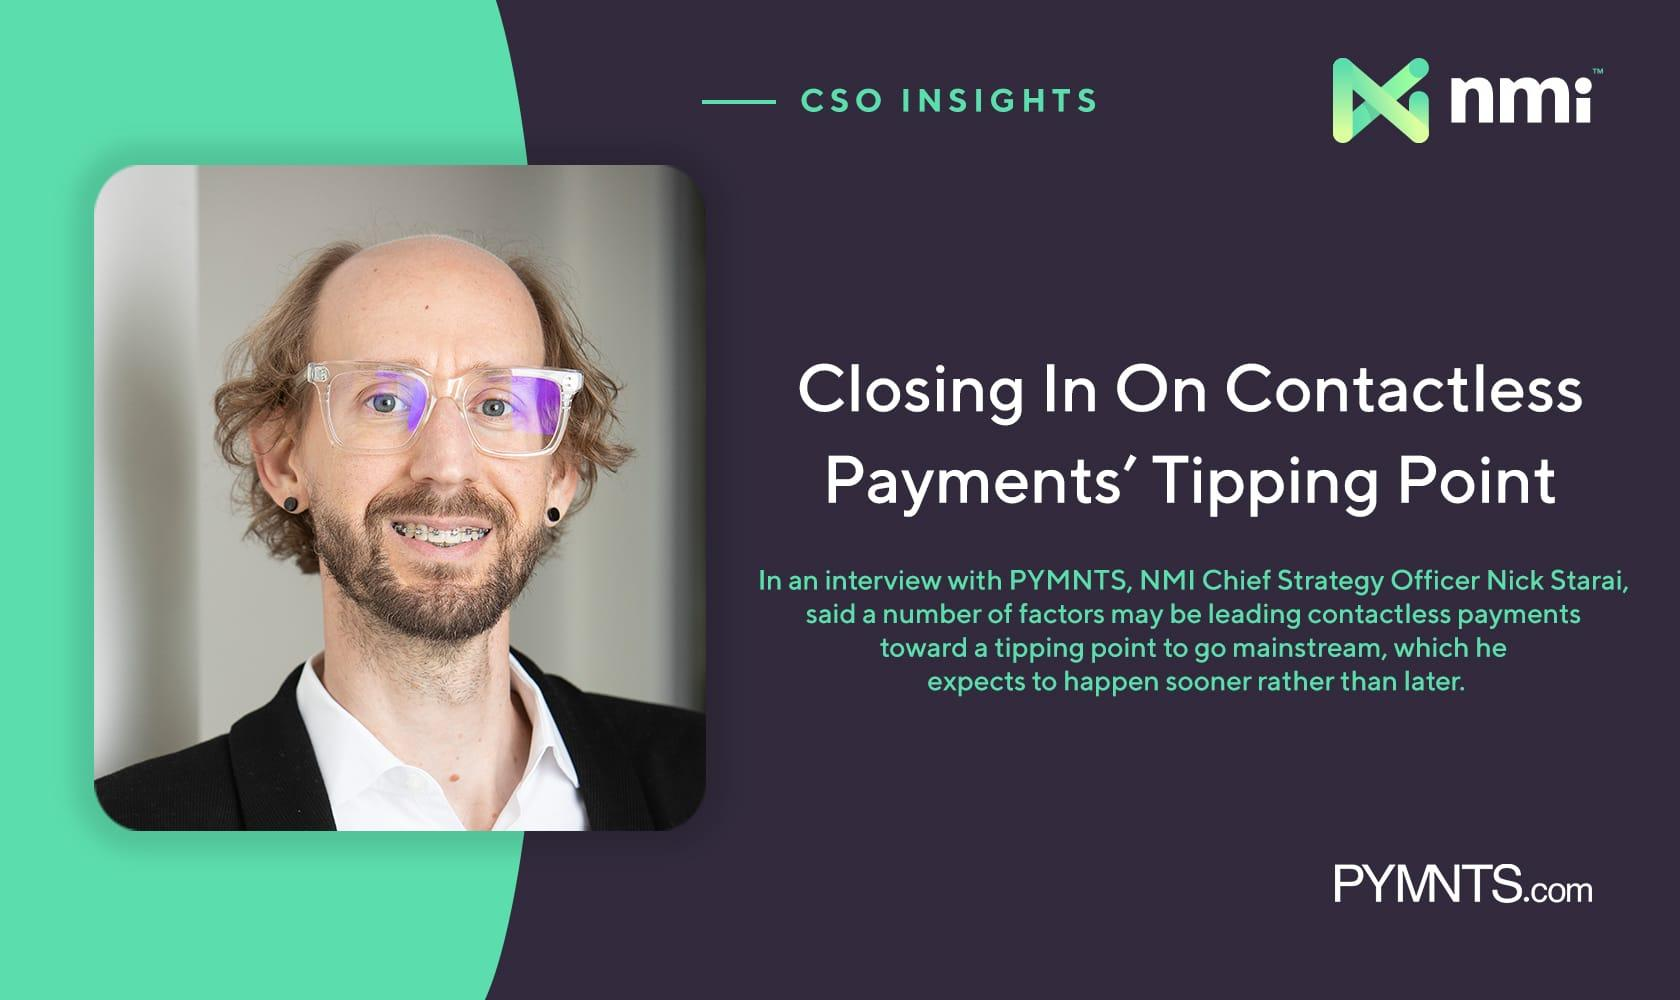 Nick Starai — NMI on the contactless payment tipping point